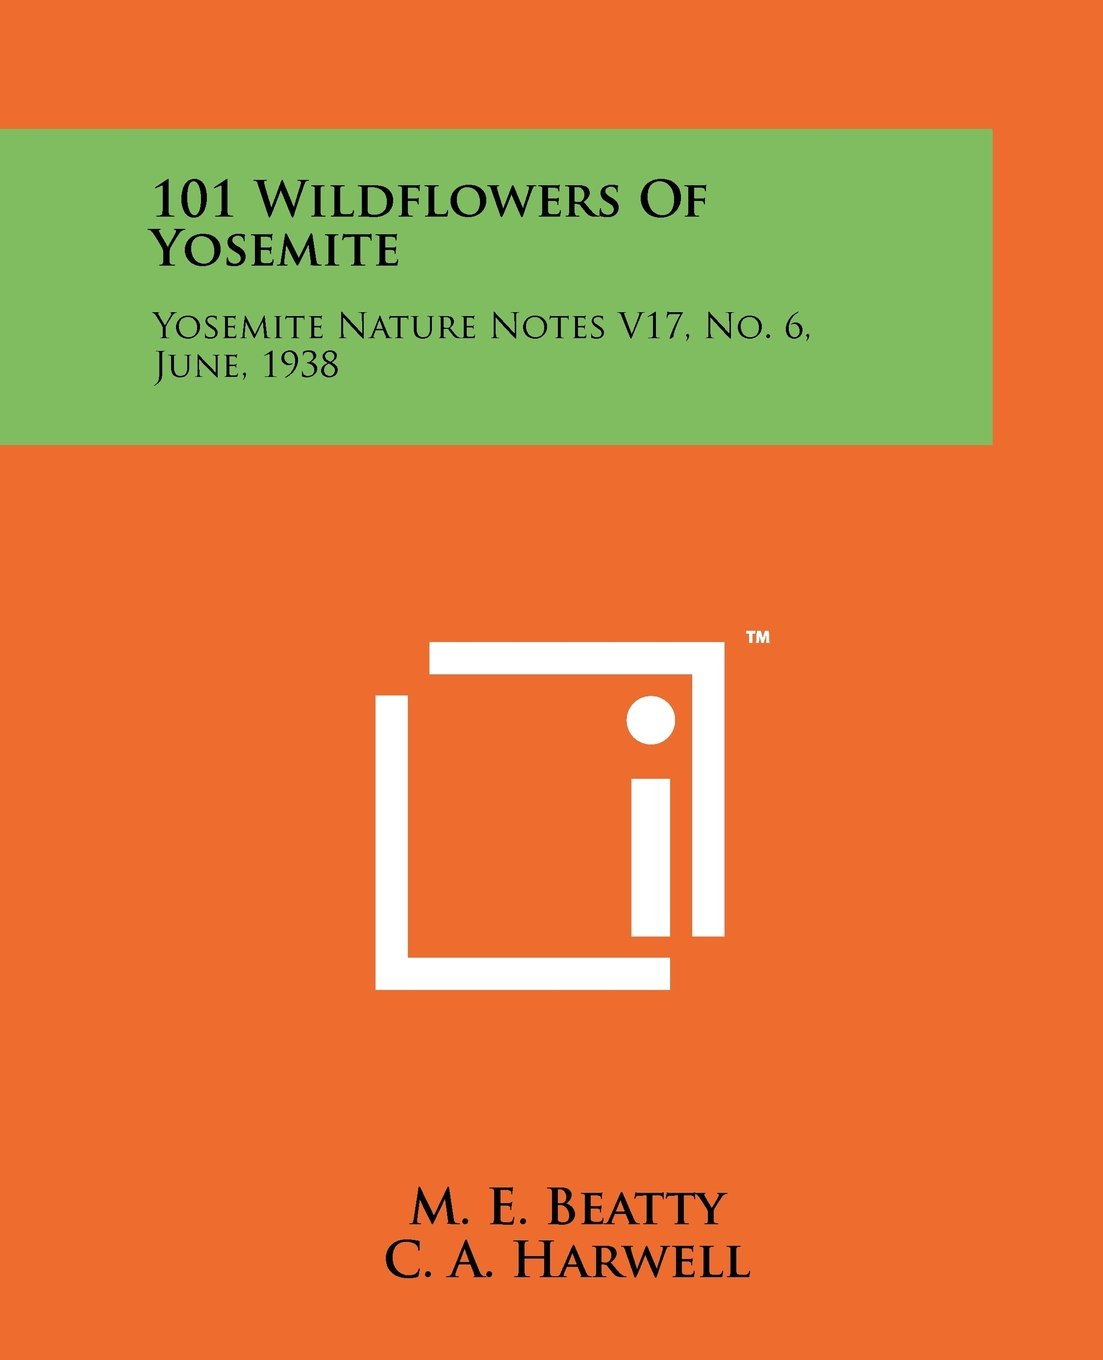 Download 101 Wildflowers Of Yosemite: Yosemite Nature Notes V17, No. 6, June, 1938 ebook